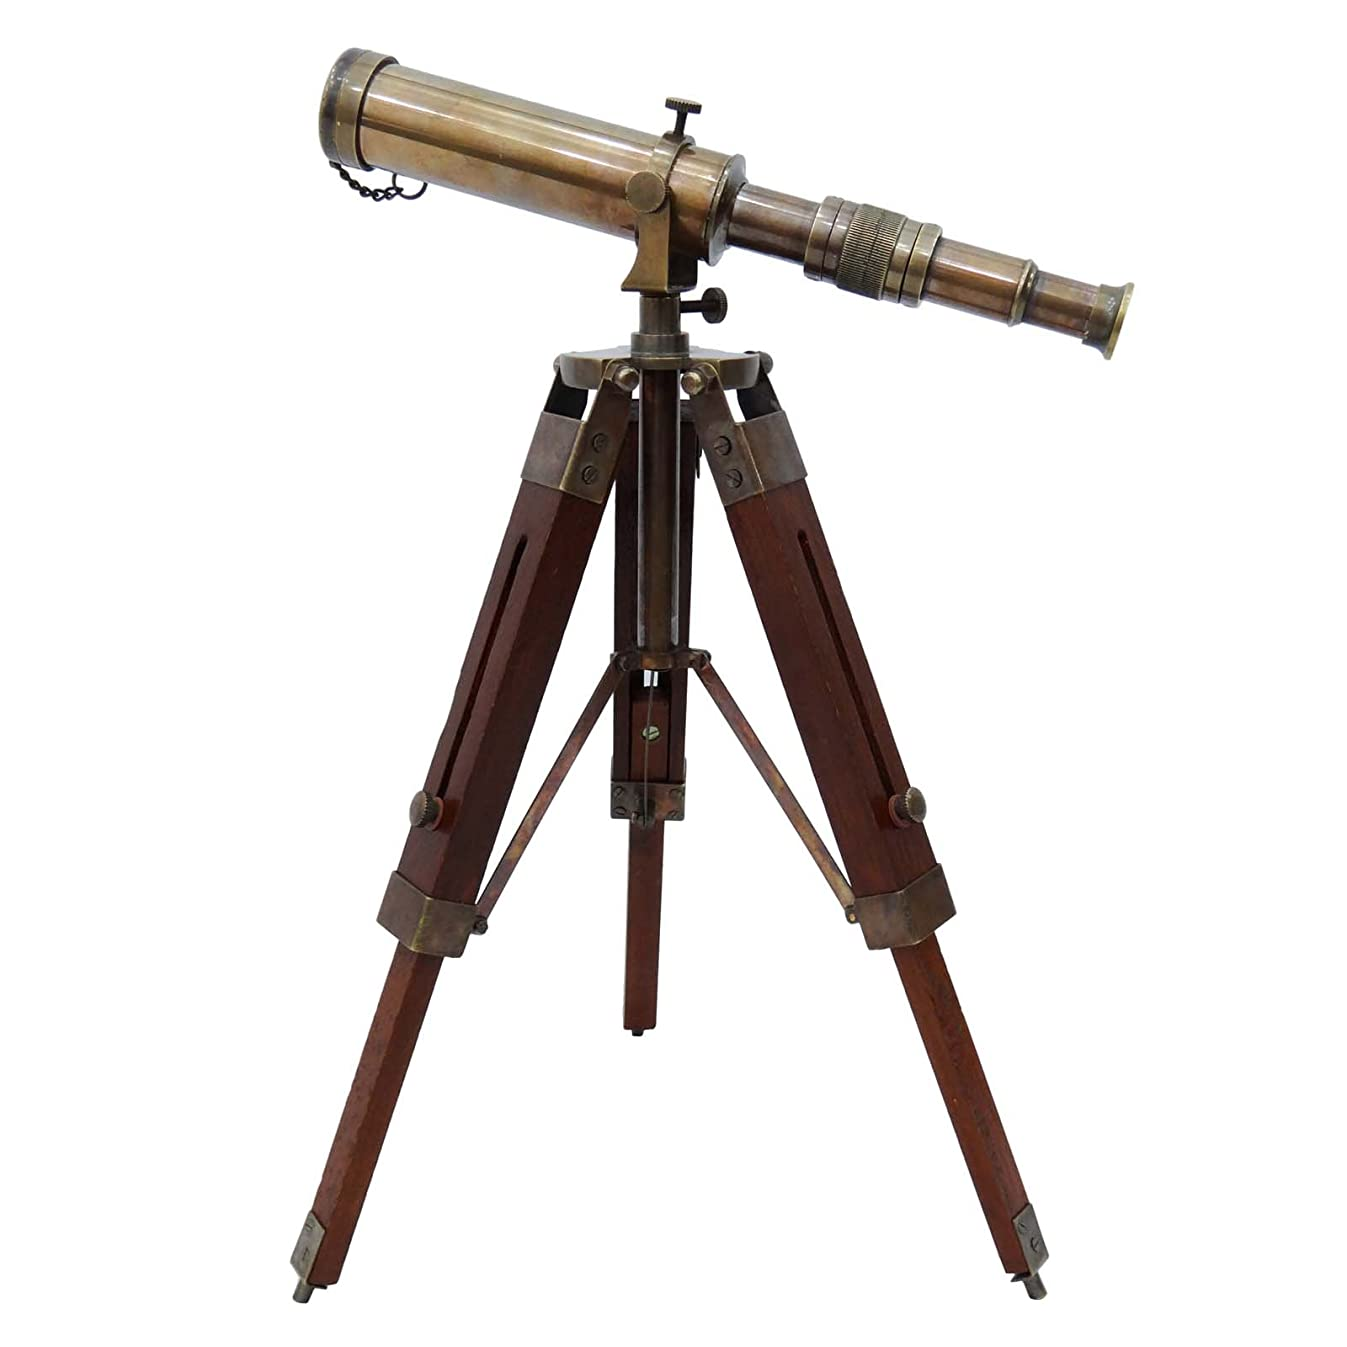 Telescope Brass Pirate Solid Spyglass Wood Decorative Stand Indian Nautical